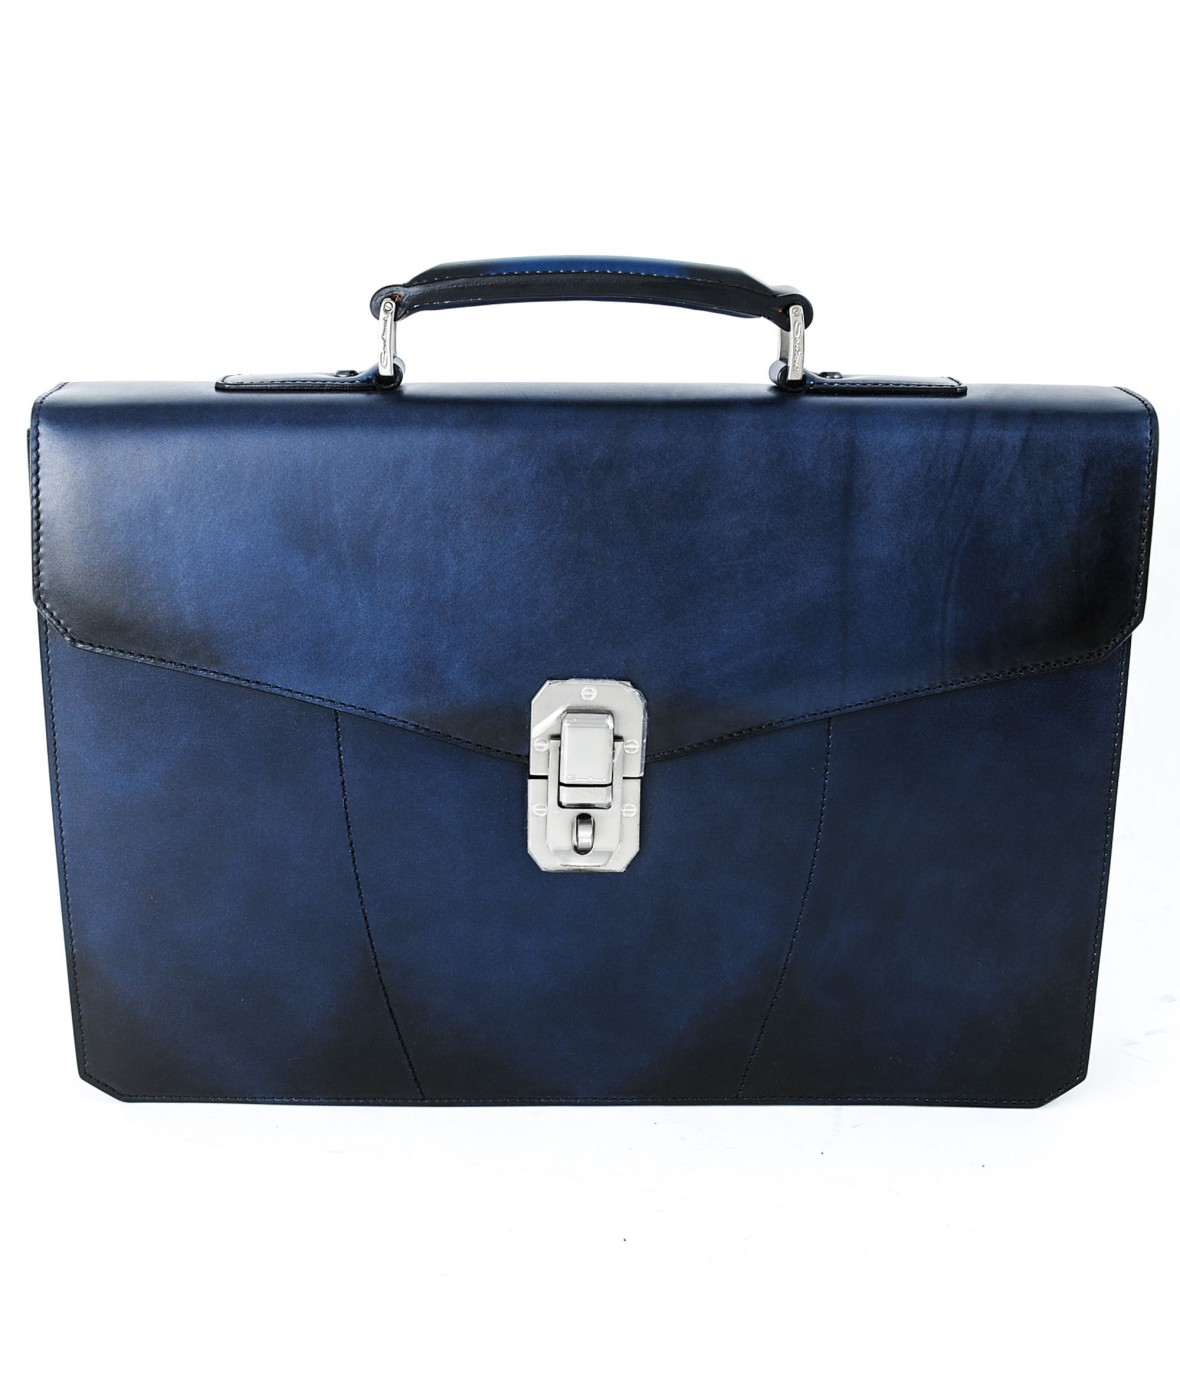 Santoni Briefcase Bag Blue U59 (28606)